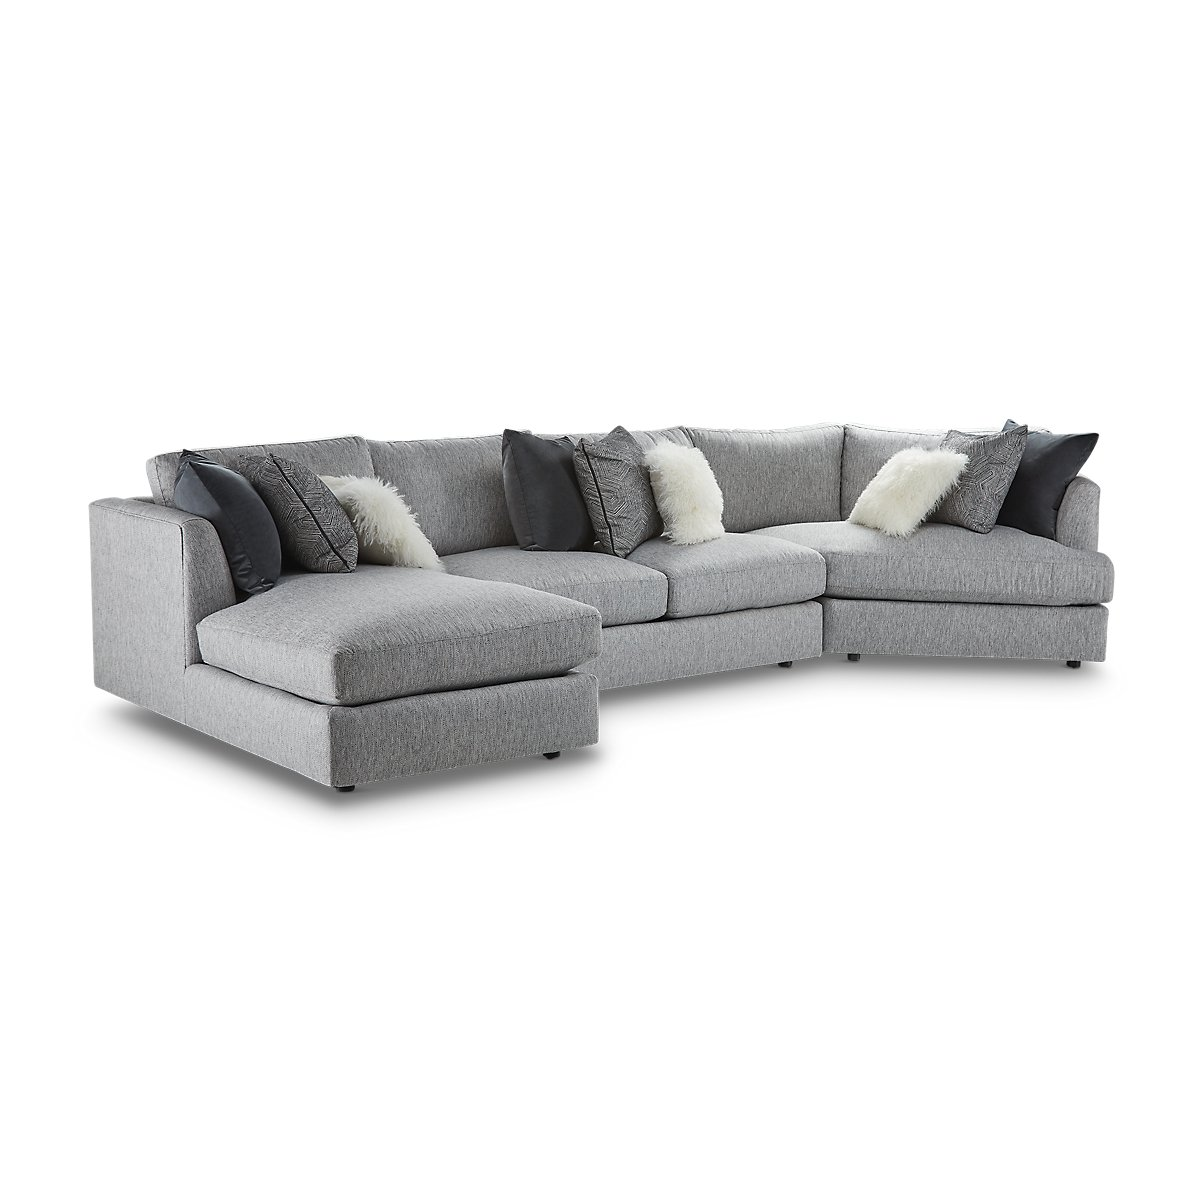 Sydney Gray Fabric Left Facing Chaise Cuddler Sectional Living